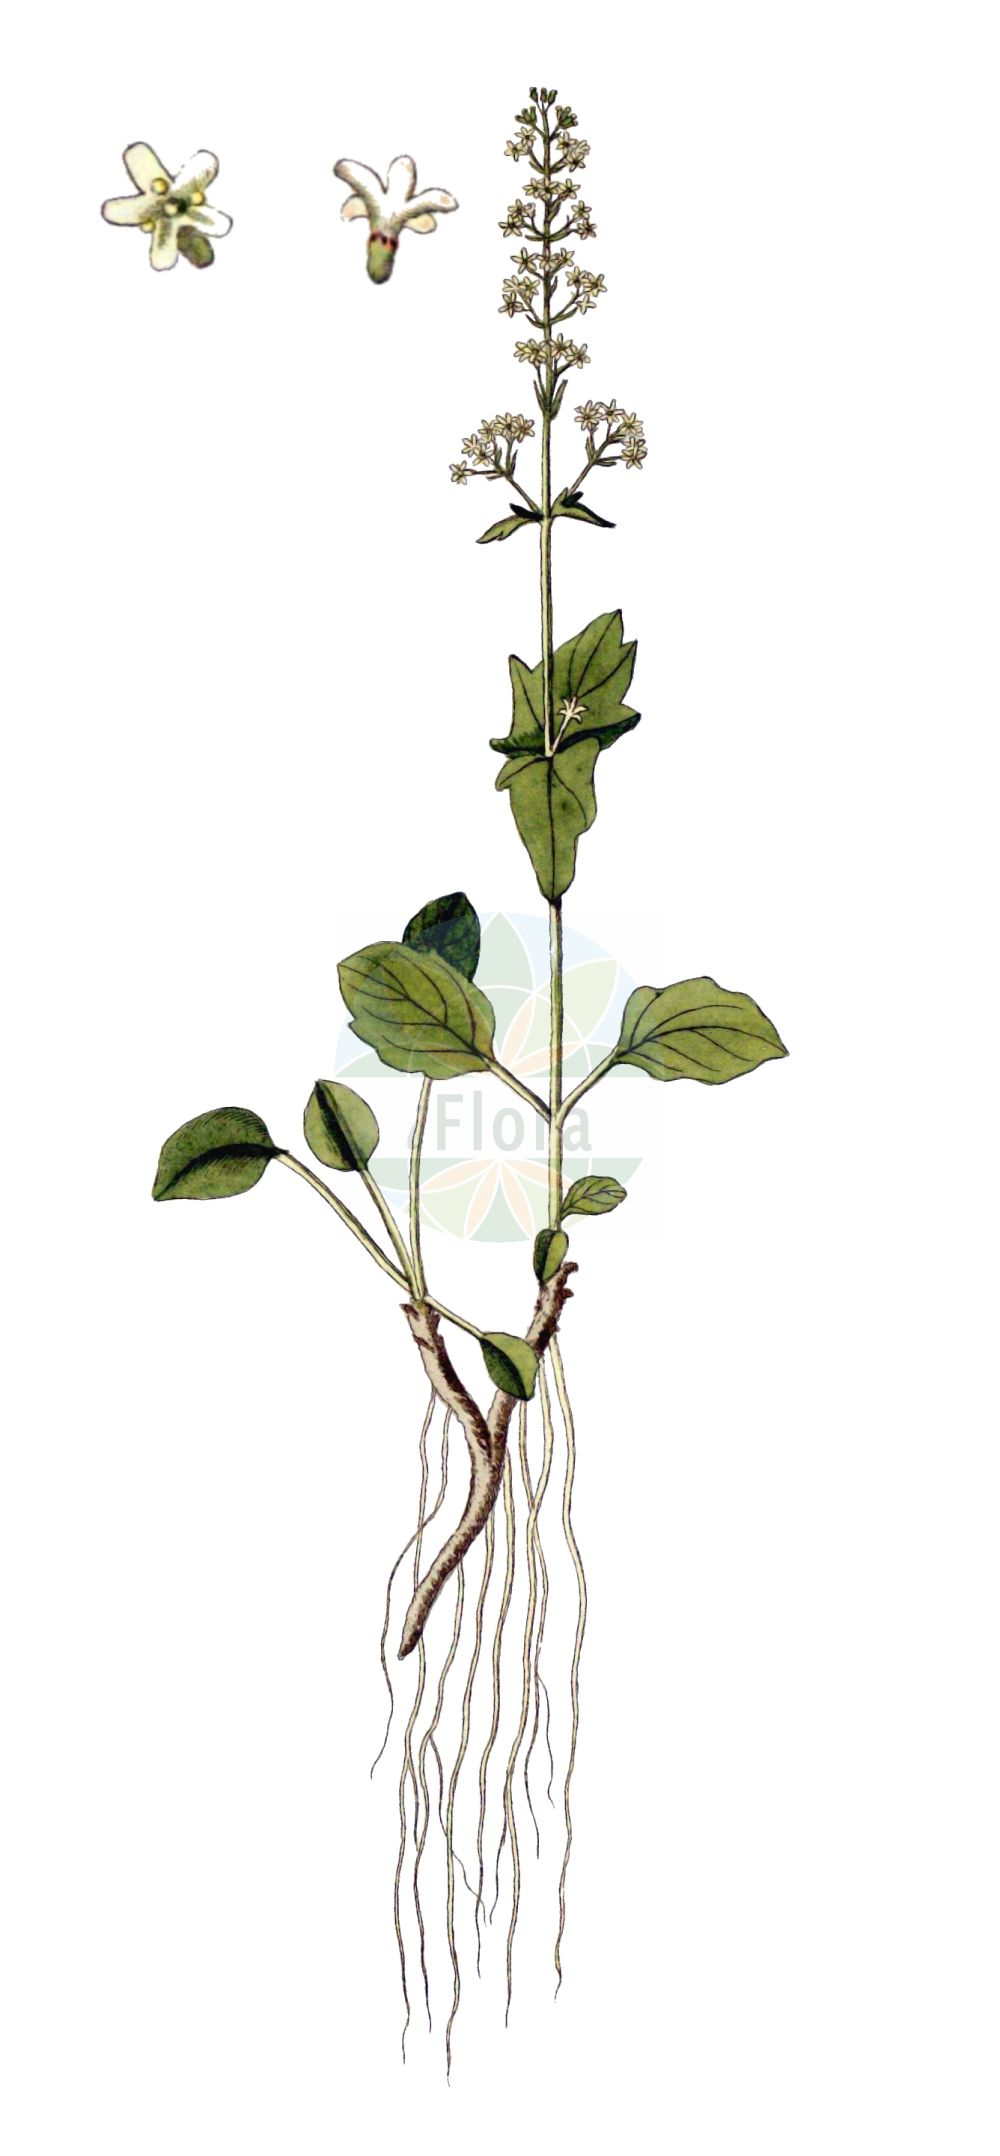 Historische Abbildung von Valeriana elongata. Das Bild zeigt Blatt, Bluete, Frucht und Same. ---- Historical Drawing of Valeriana elongata.The image is showing leaf, flower, fruit and seed.(Valeriana elongata,Valeriana elongata,Valeriana,Baldrian,Valerian,Caprifoliaceae,Geissblattgewaechse,Honeysuckle family,Blatt,Bluete,Frucht,Same,leaf,flower,fruit,seed,von Jacquin (1727-1817))